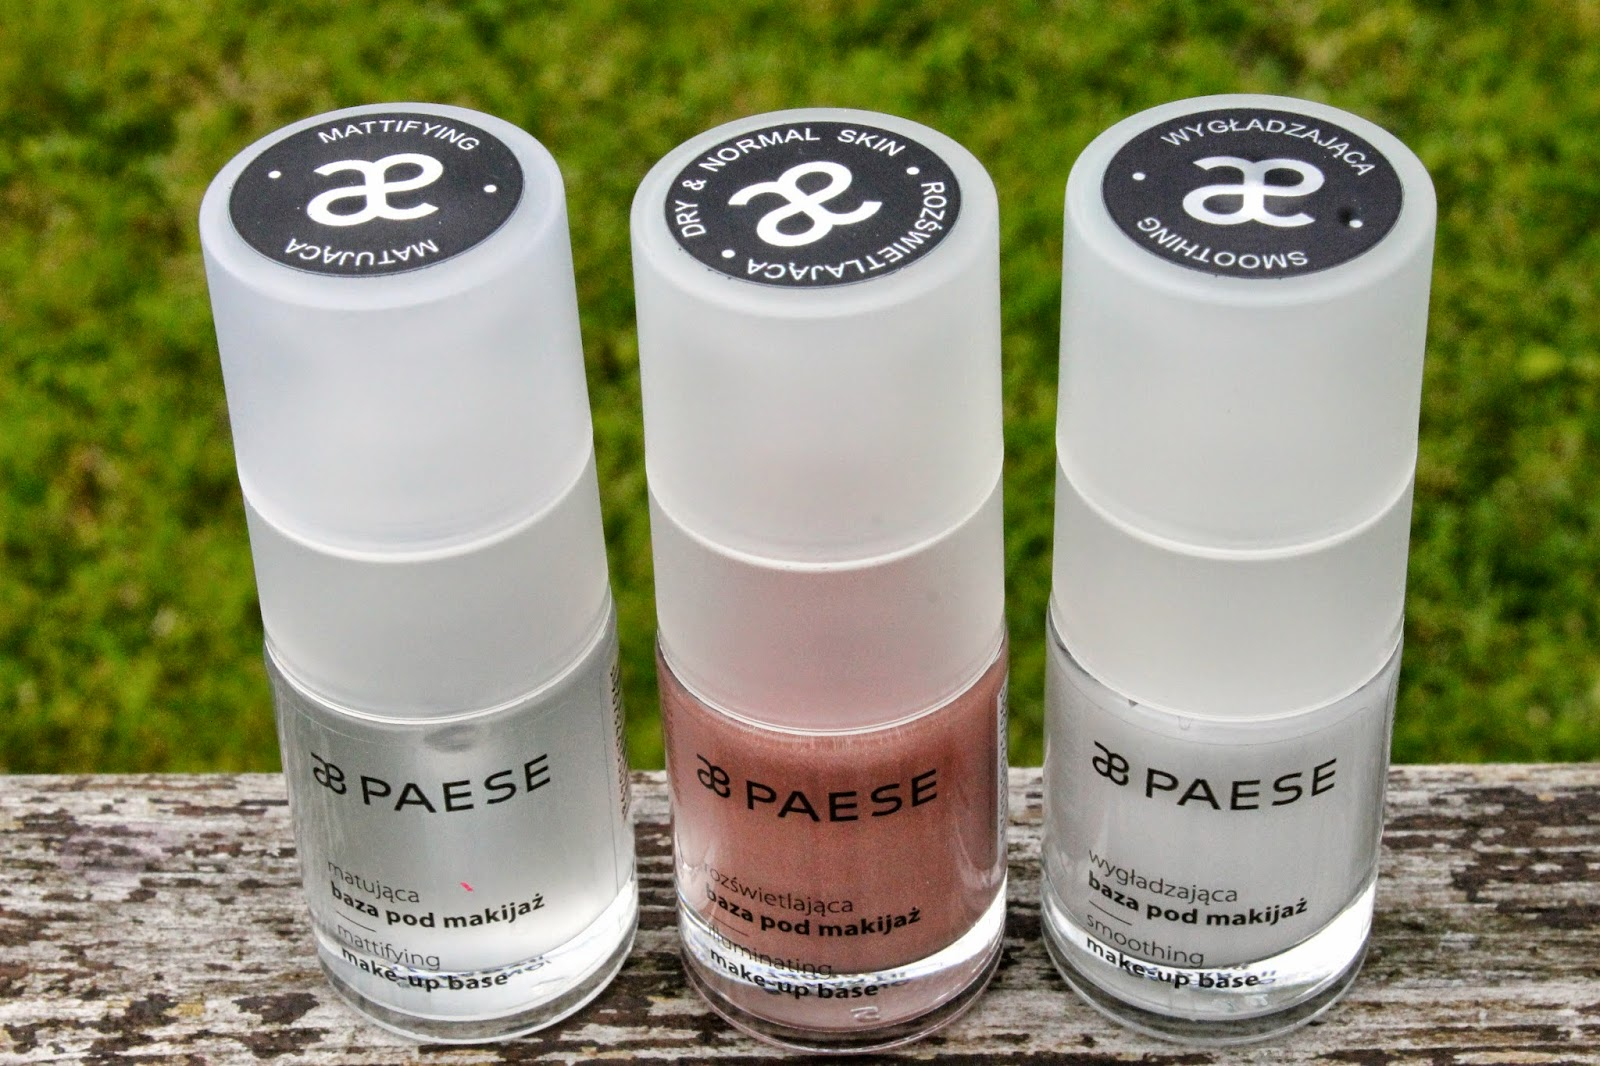 Paese Make up bases